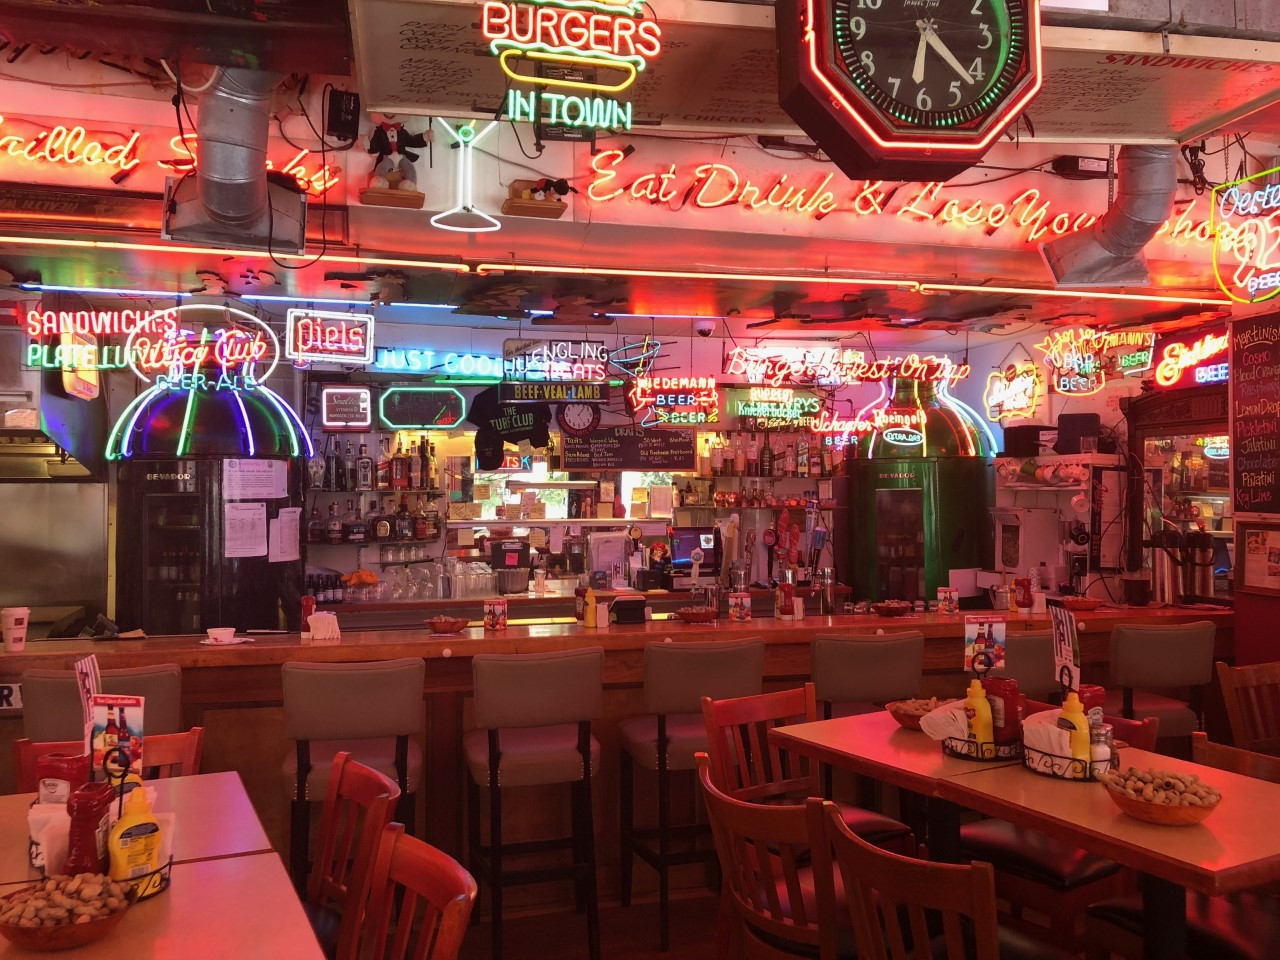 "PLACE: Terry's Turf Club / ADDRESS: 4618 Eastern Avenue (Linwood) / EPISODE: Season 9, Episode 6: ""Grilled, Smoked and Sauced"" / Although Terry's Turf Club came under new ownership in 2019, their menu and recipes remain the same. Stop by this local Linwood joint for a hearty bowl of filet mignon chili and the aptly named ""Fieri Burger"" topped with the restaurant's one-of-a-kind Burgundy wine sauce. / Image courtesy of Terry's Turf Club // Published: 8.18.19"